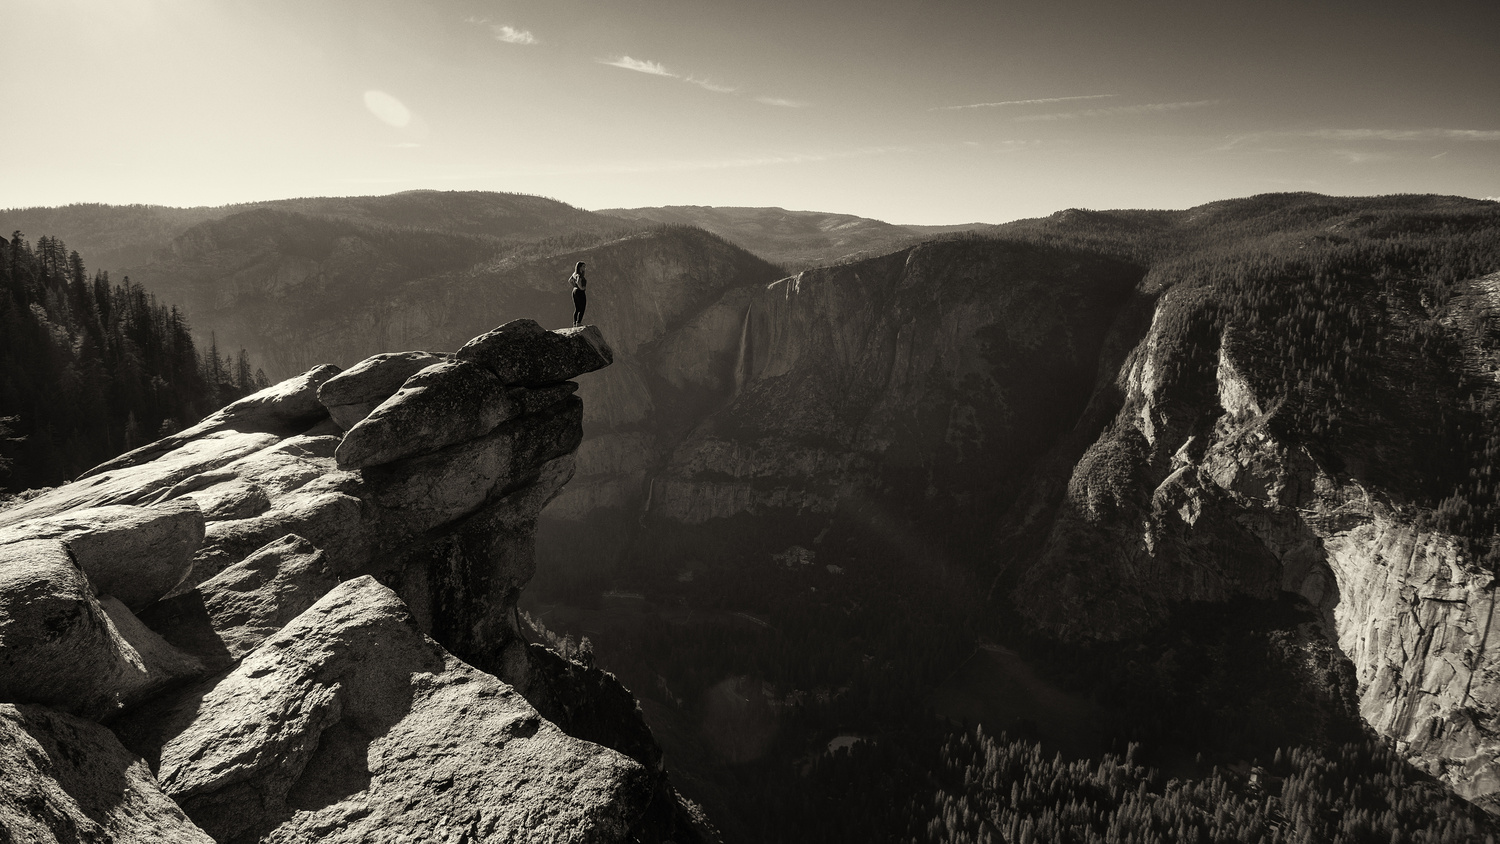 On the Edge by Joshua Krause